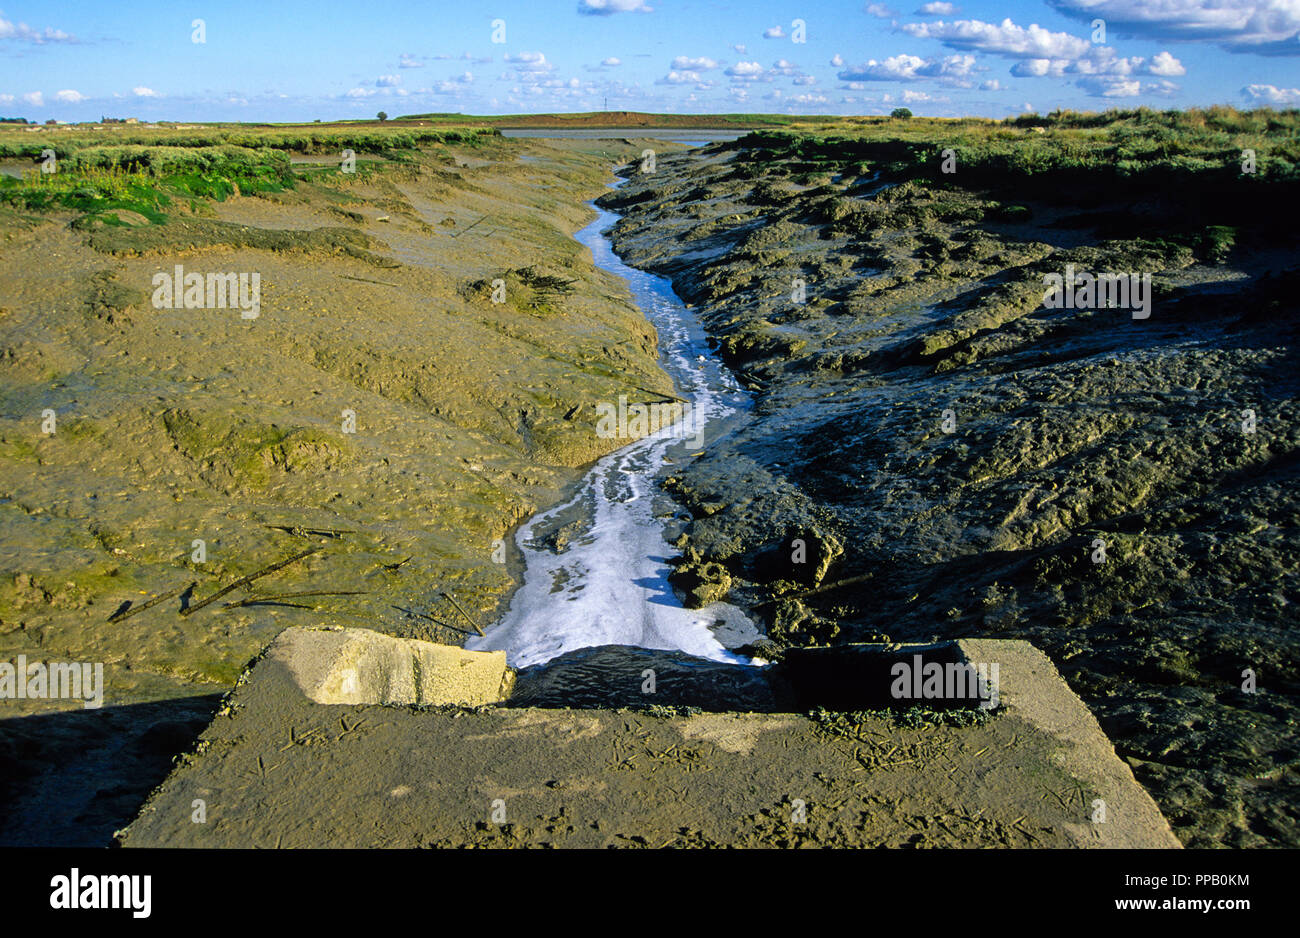 southern-water-sewage-outflow-kent-engla